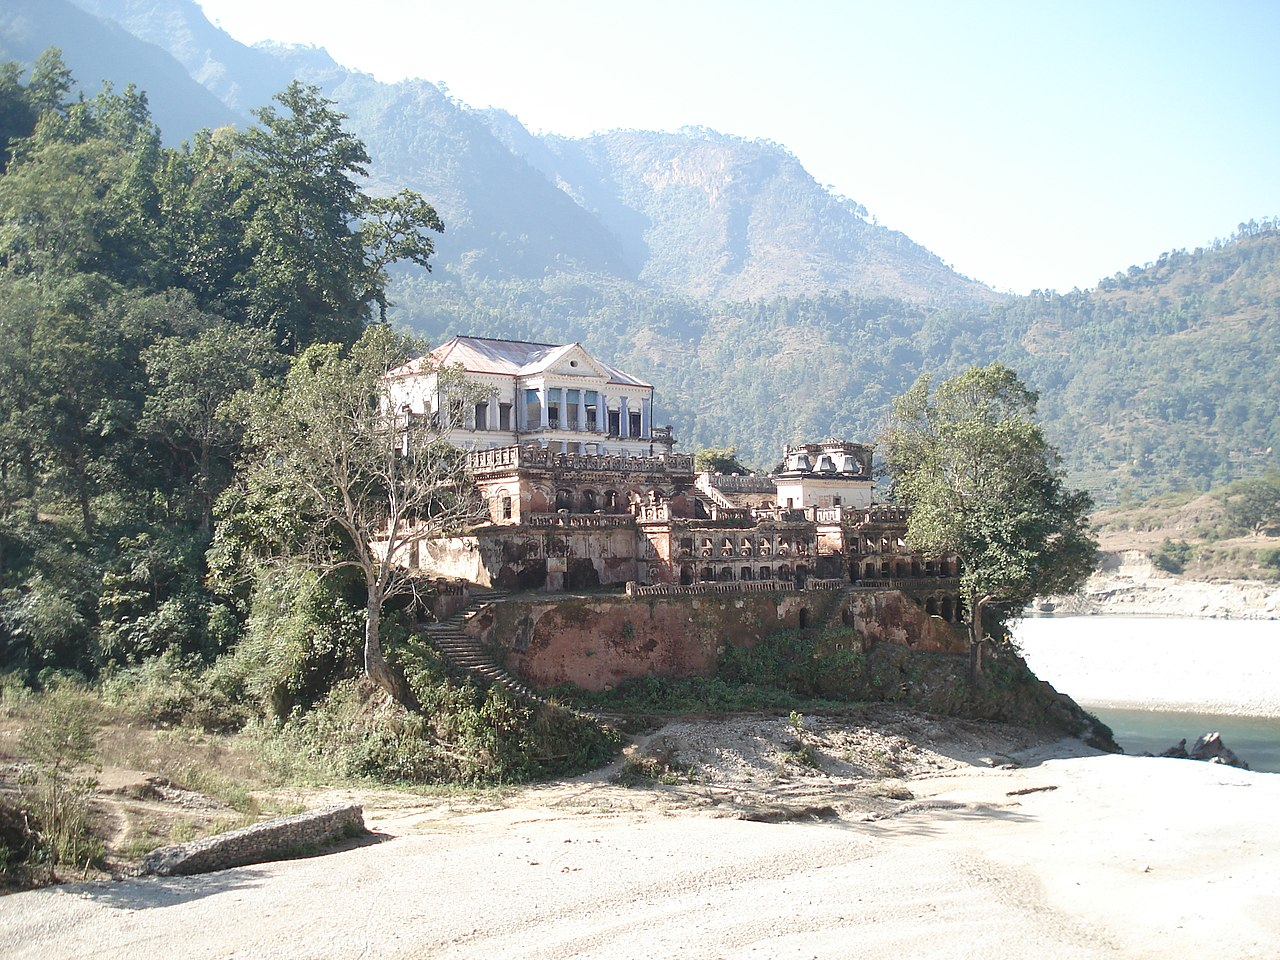 Palpa Nepal  city pictures gallery : Original file ‎ 2,816 × 2,112 pixels, file size: 2.52 MB, MIME ...